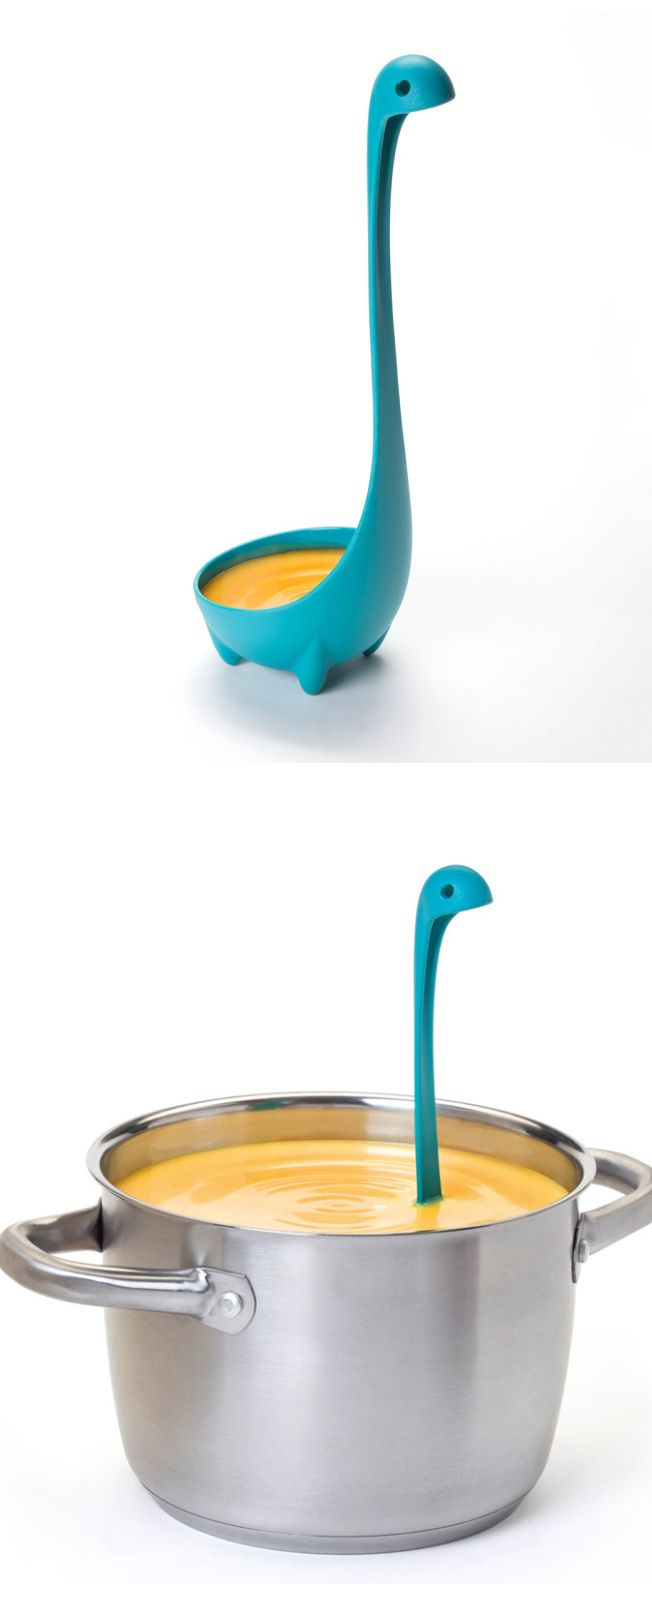 Loch Ness Ladle; Basically the best idea ever.